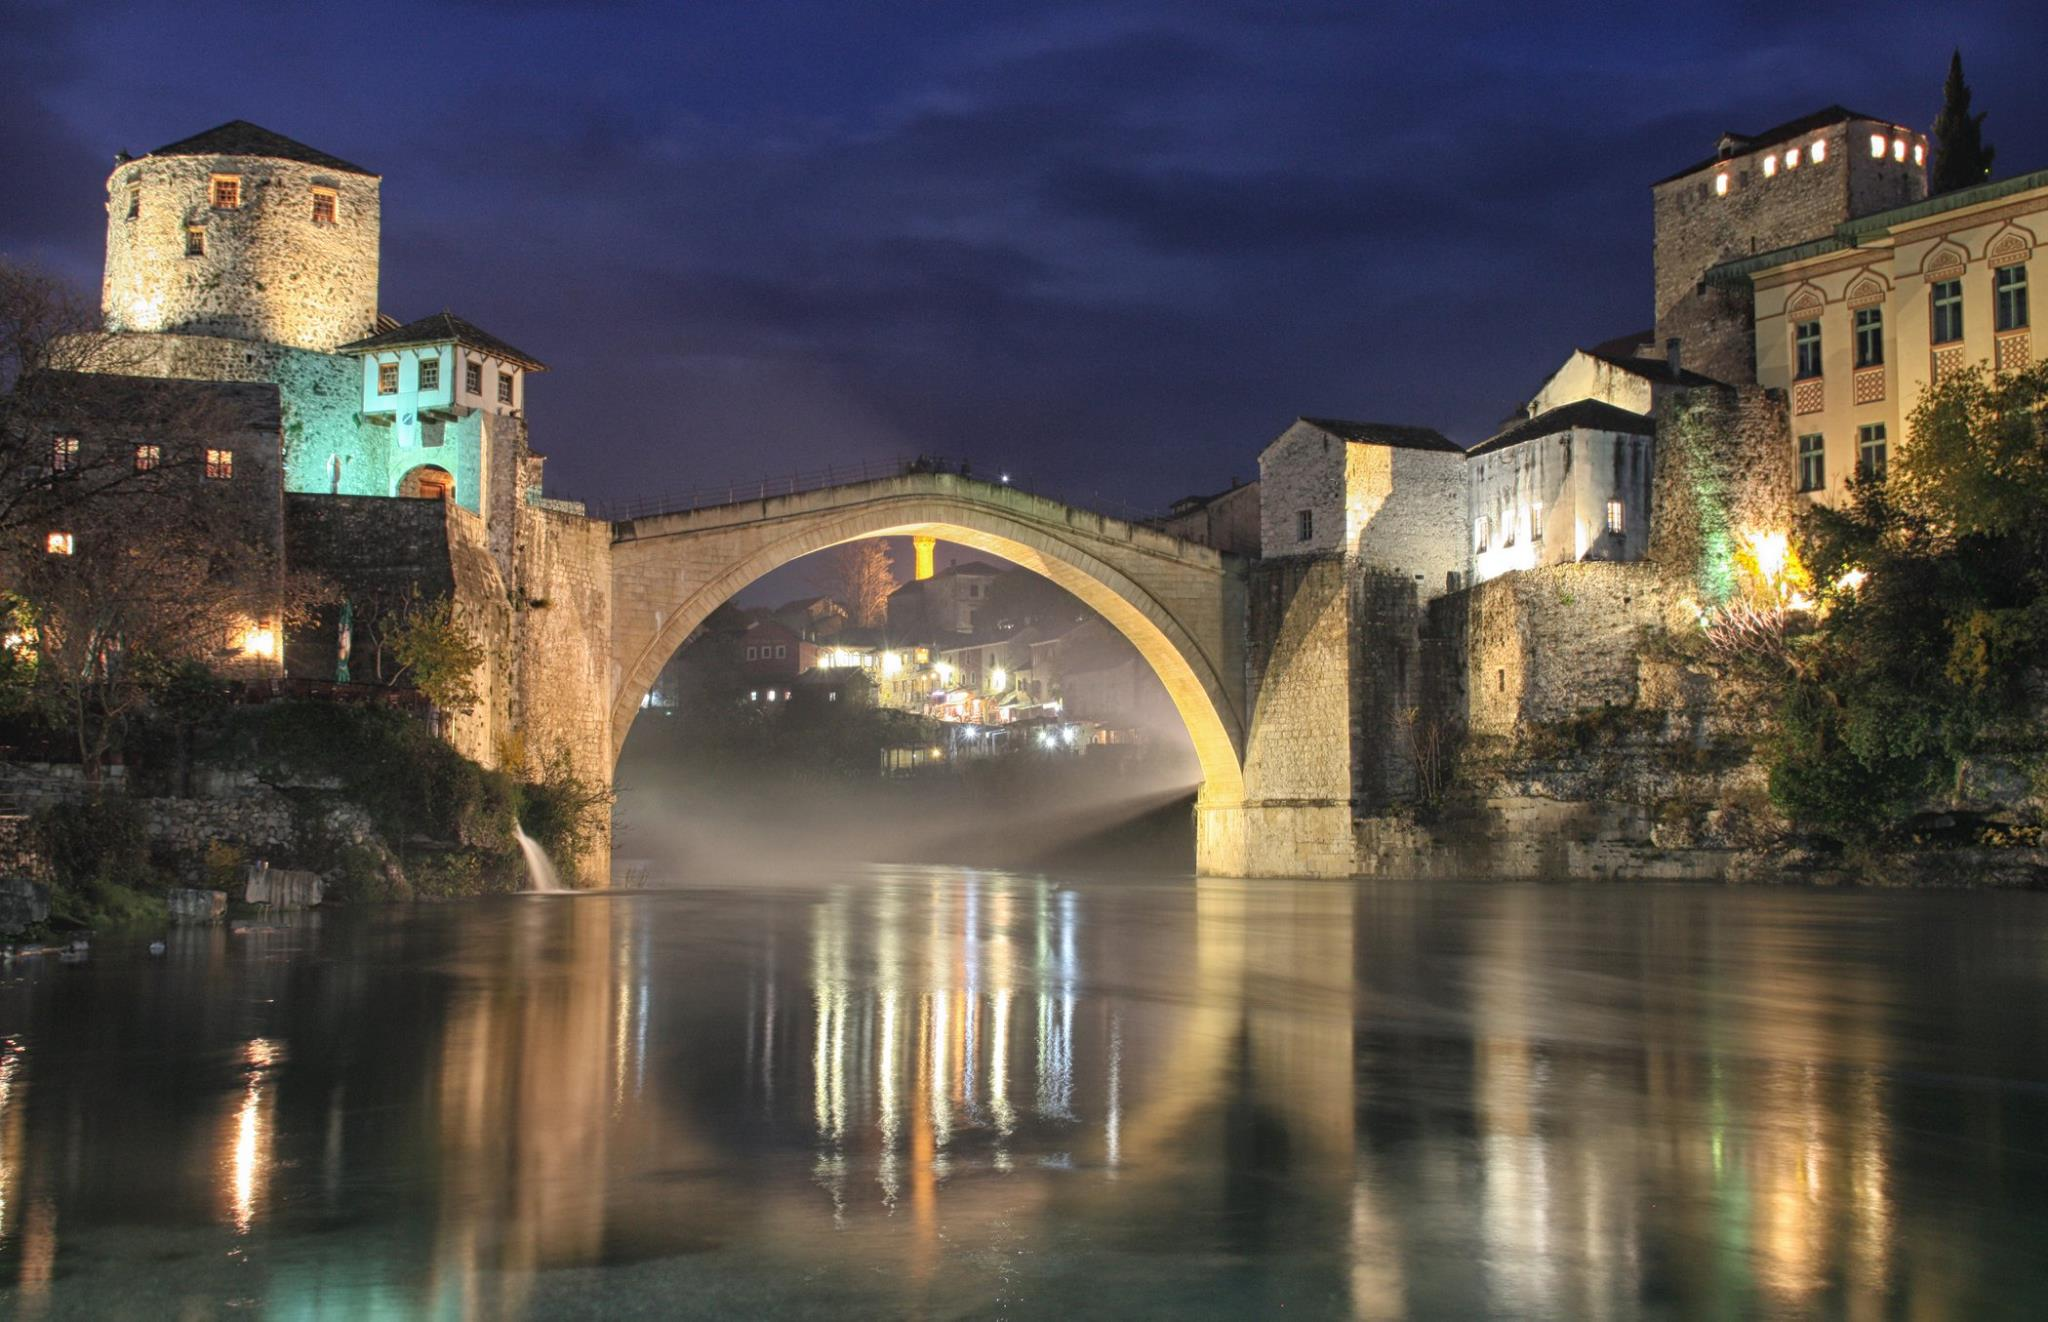 Mostar Old Bridge in the evening